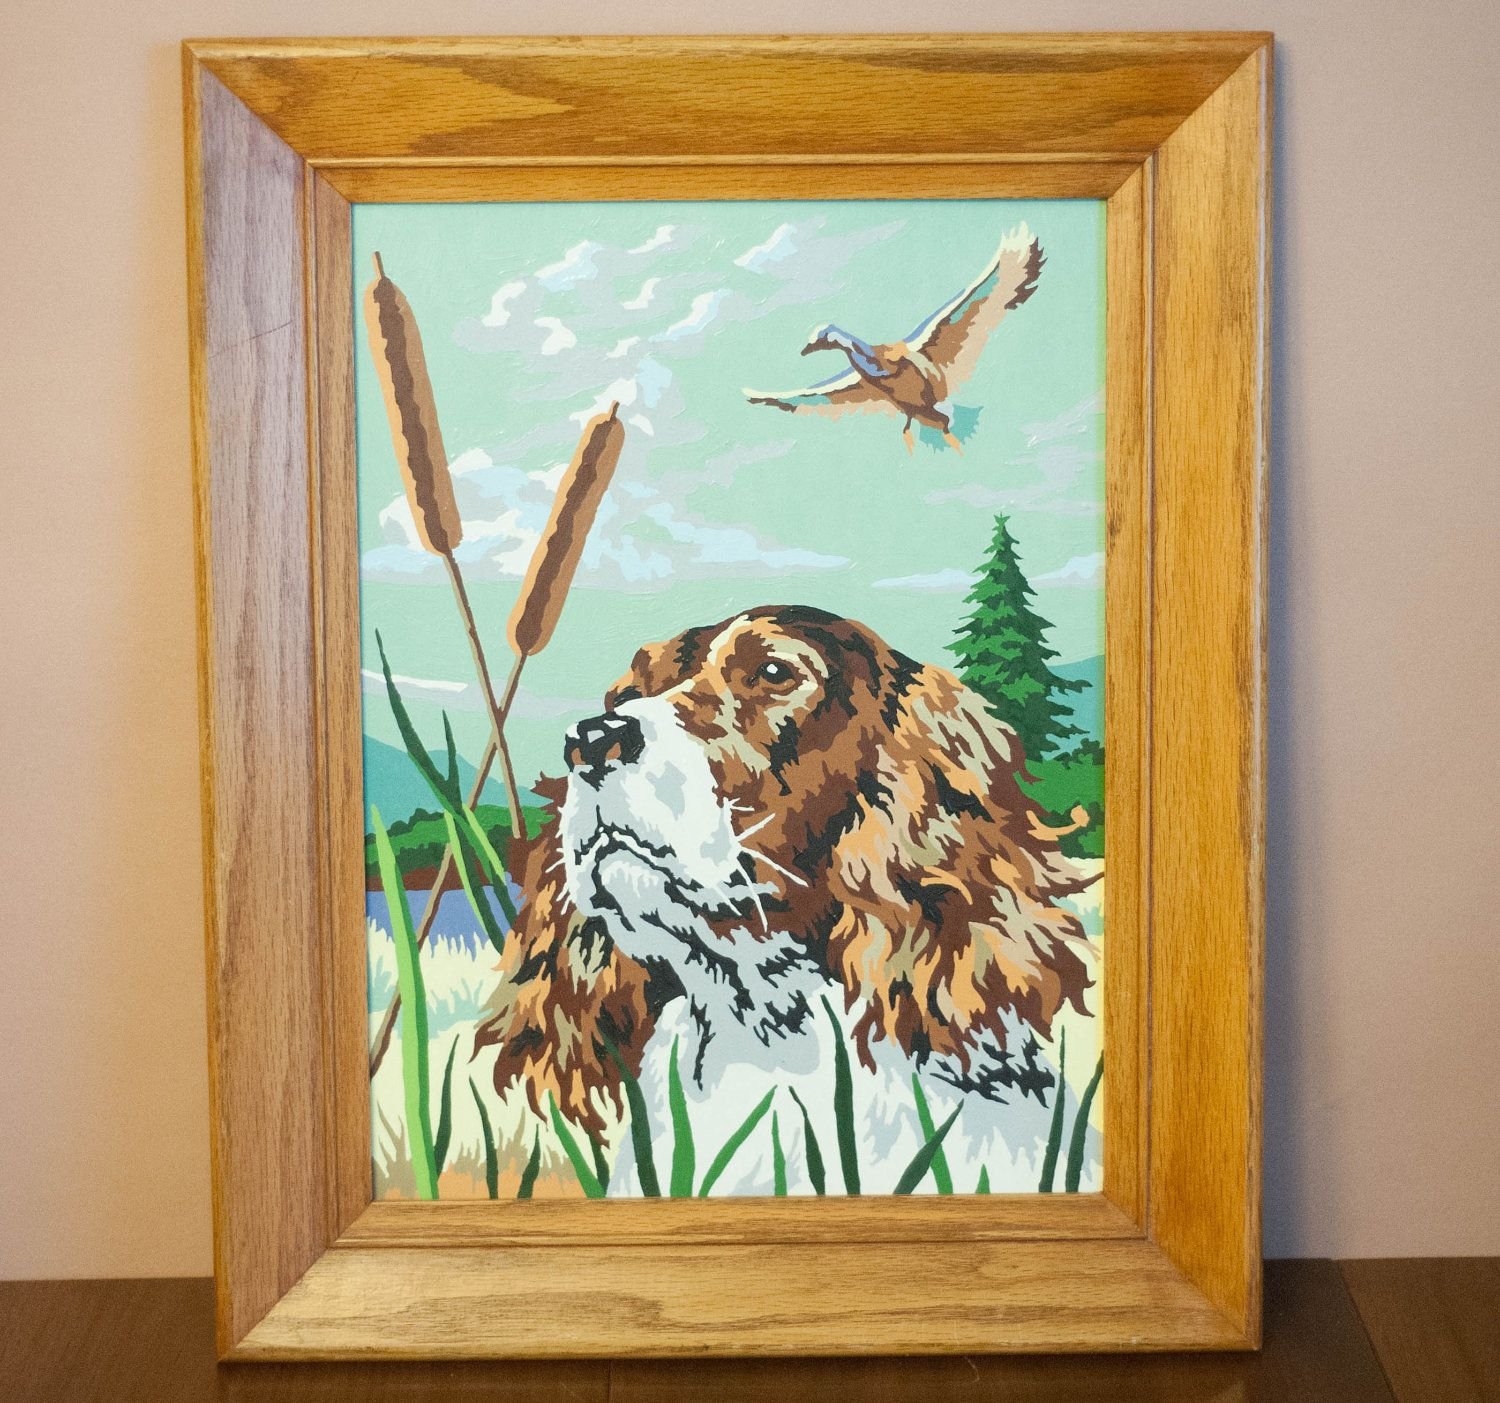 vintage paint by number   Vintage framed paint by number painting ...